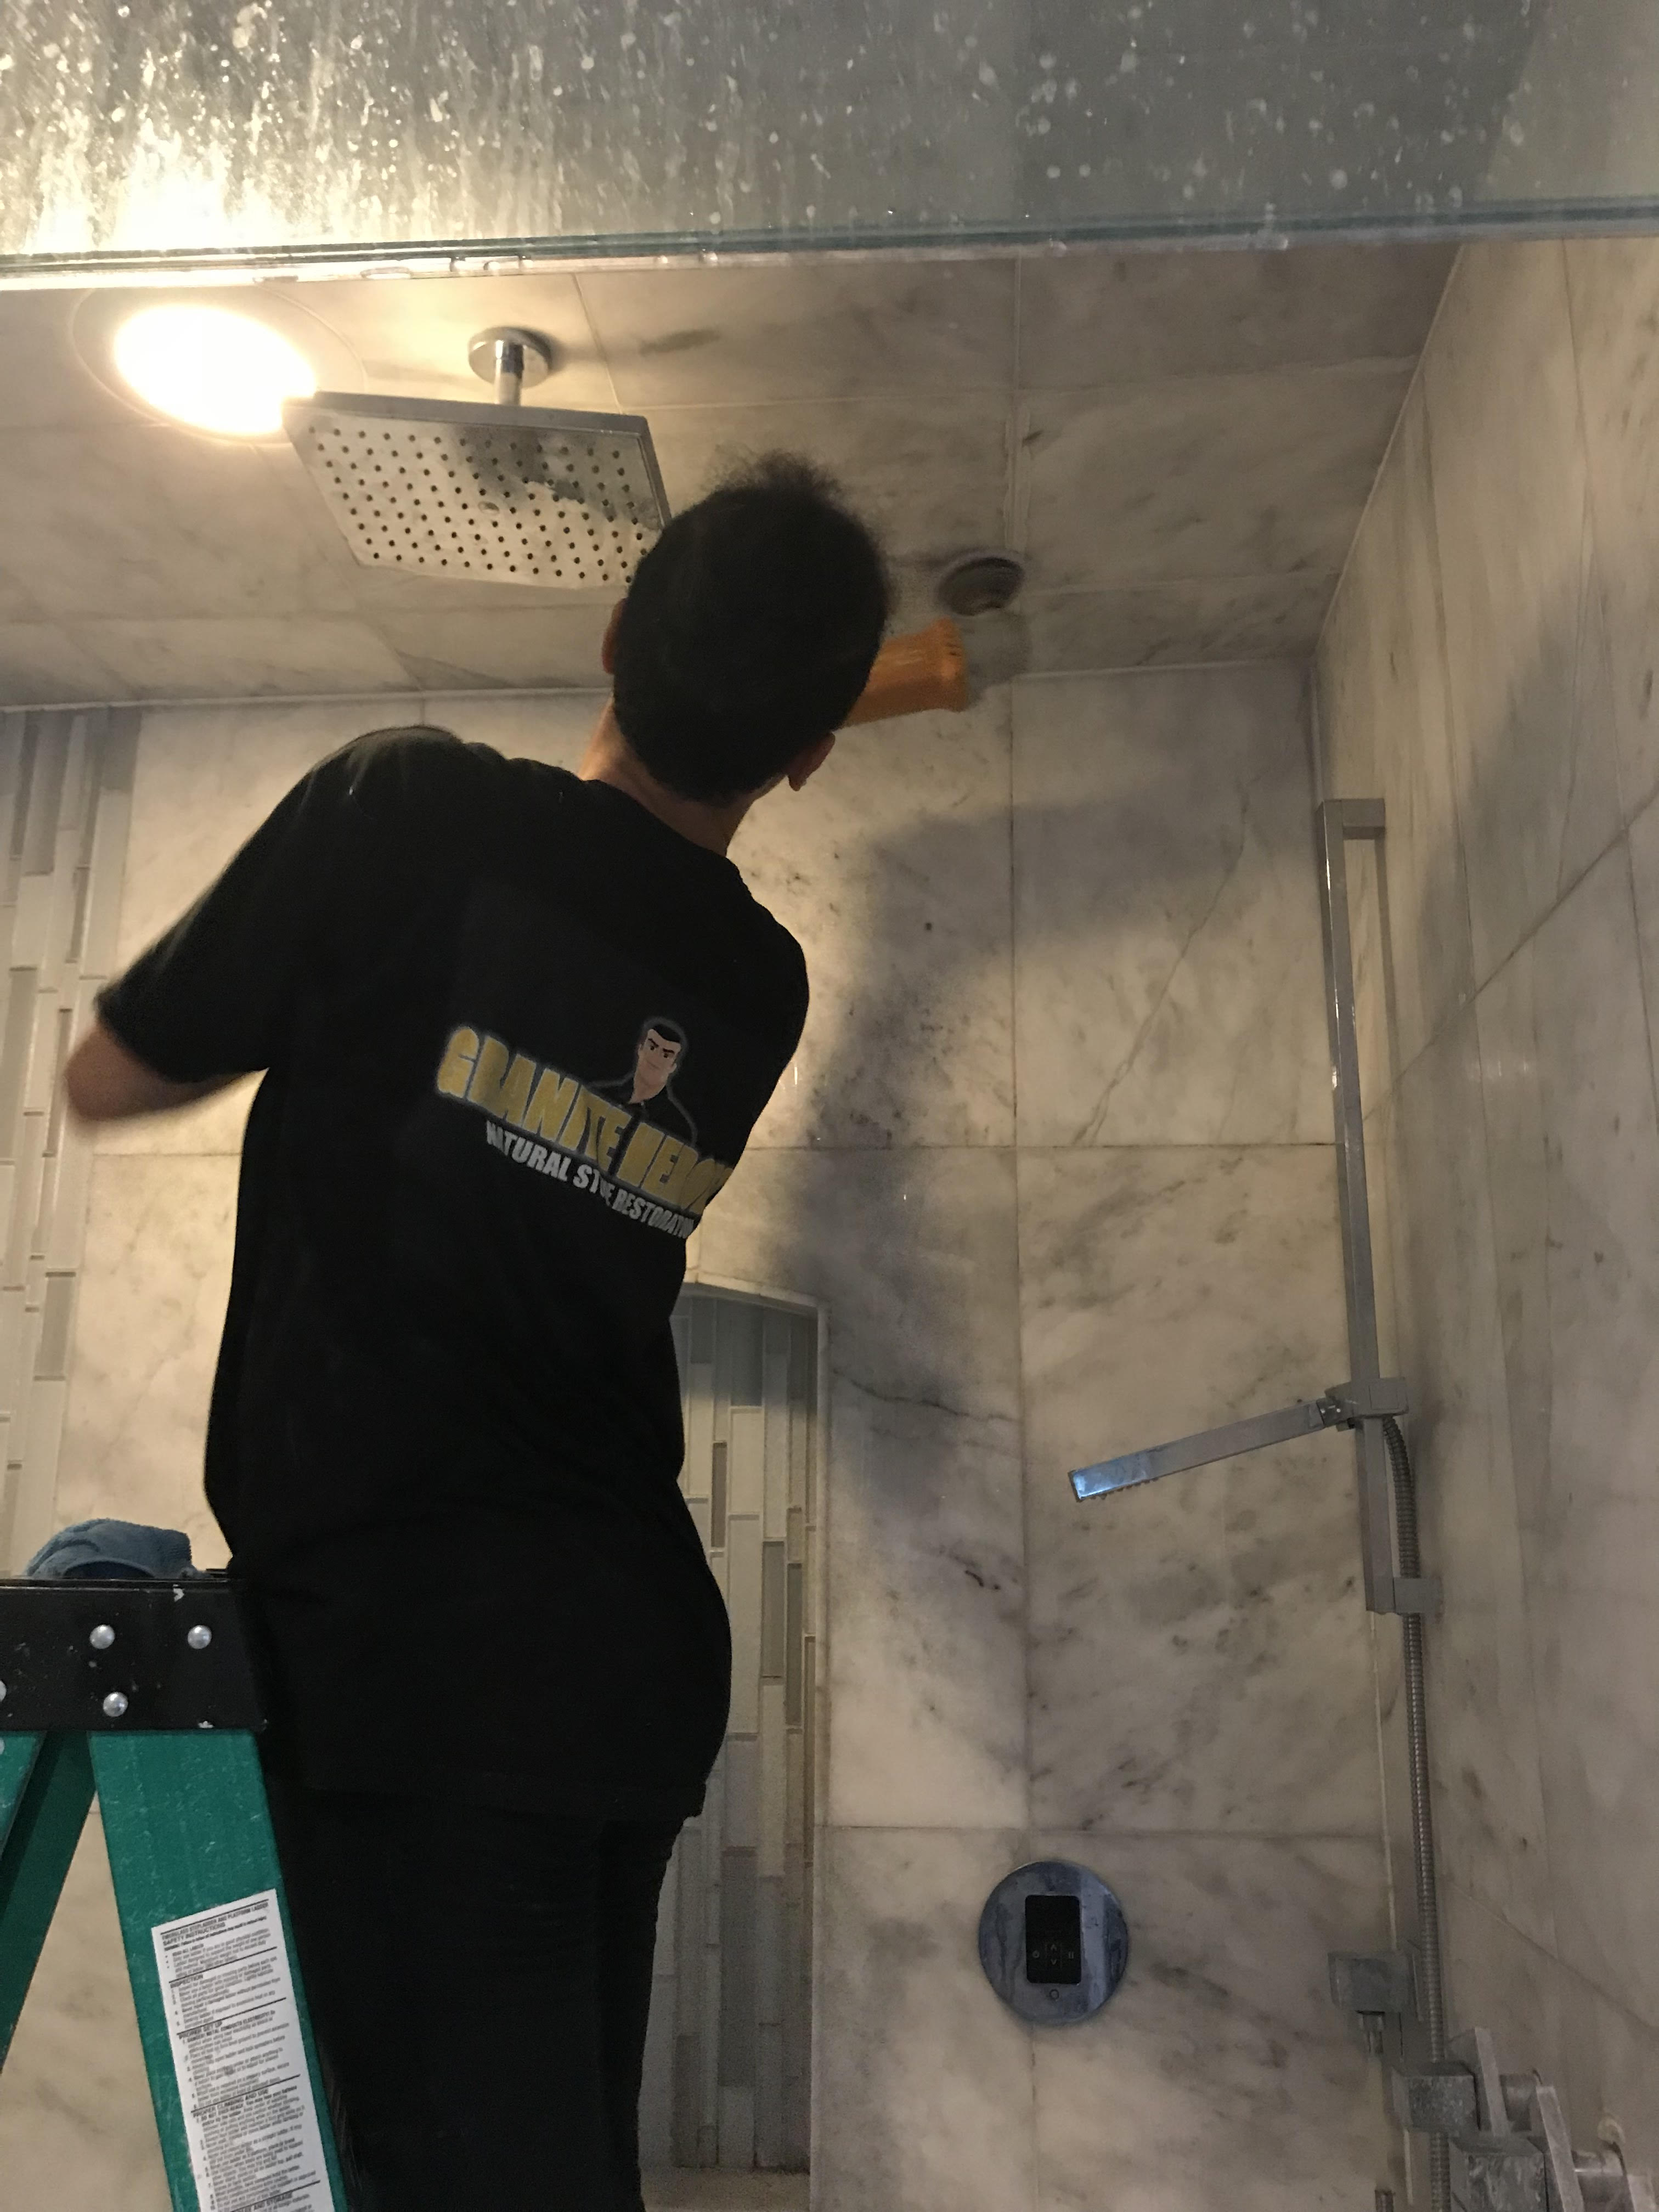 Lincoln Park Shower Cleaning Service